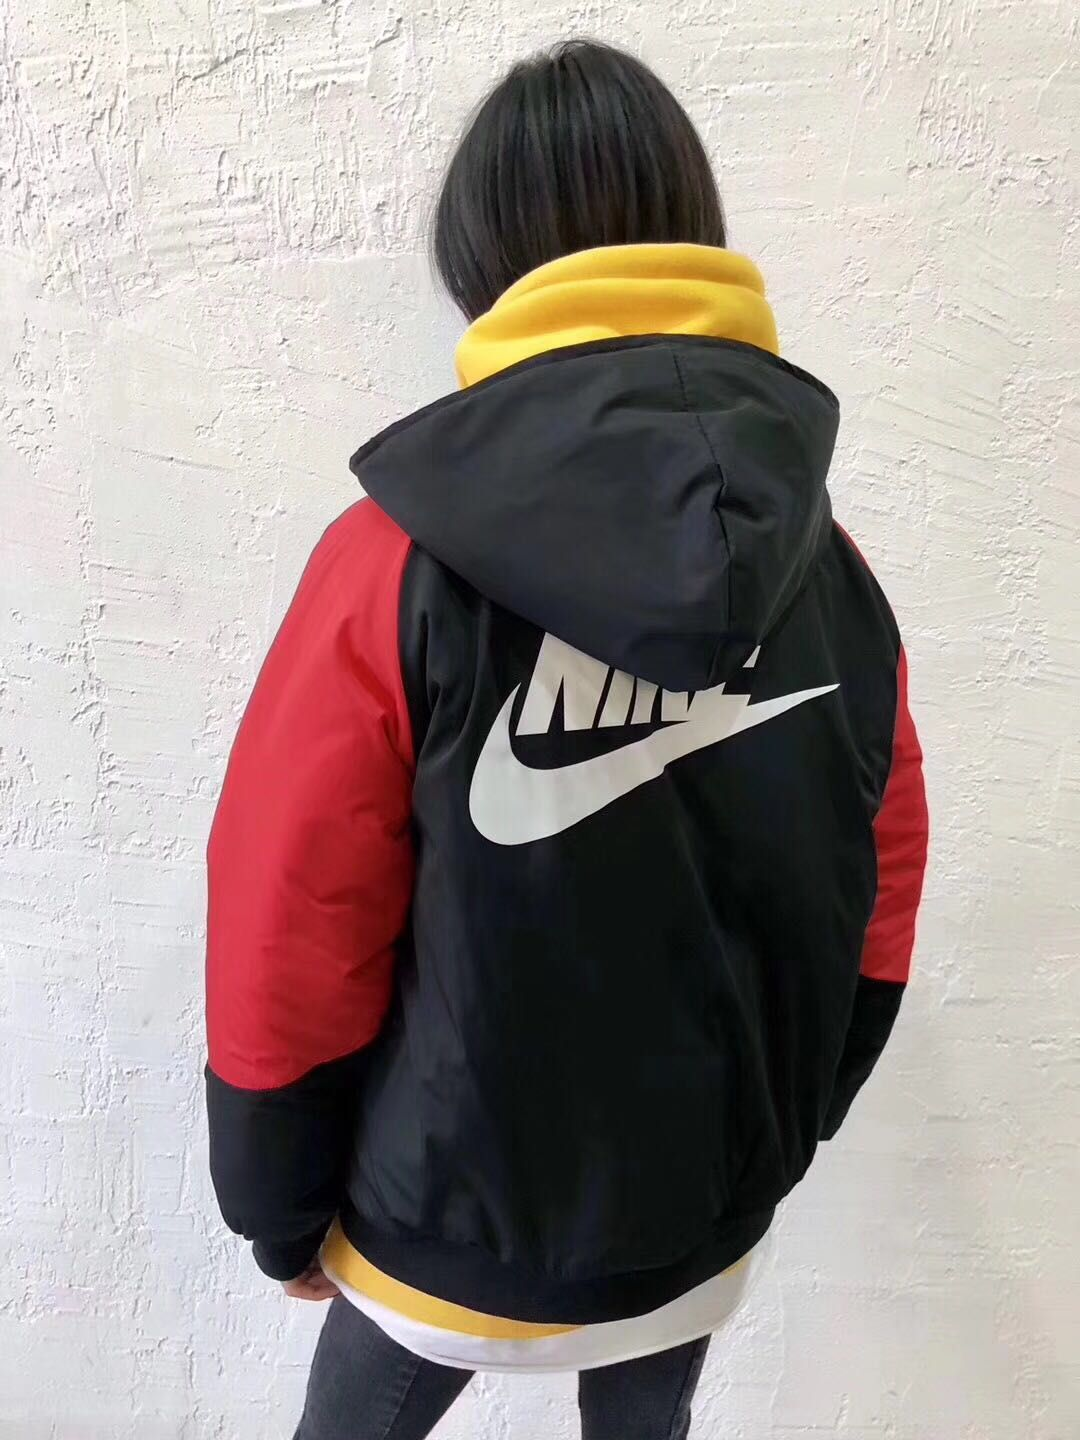 42a1d0547dd7 KITH NIKE SHERPA SIDELINE PADDED COAT BLACK RED